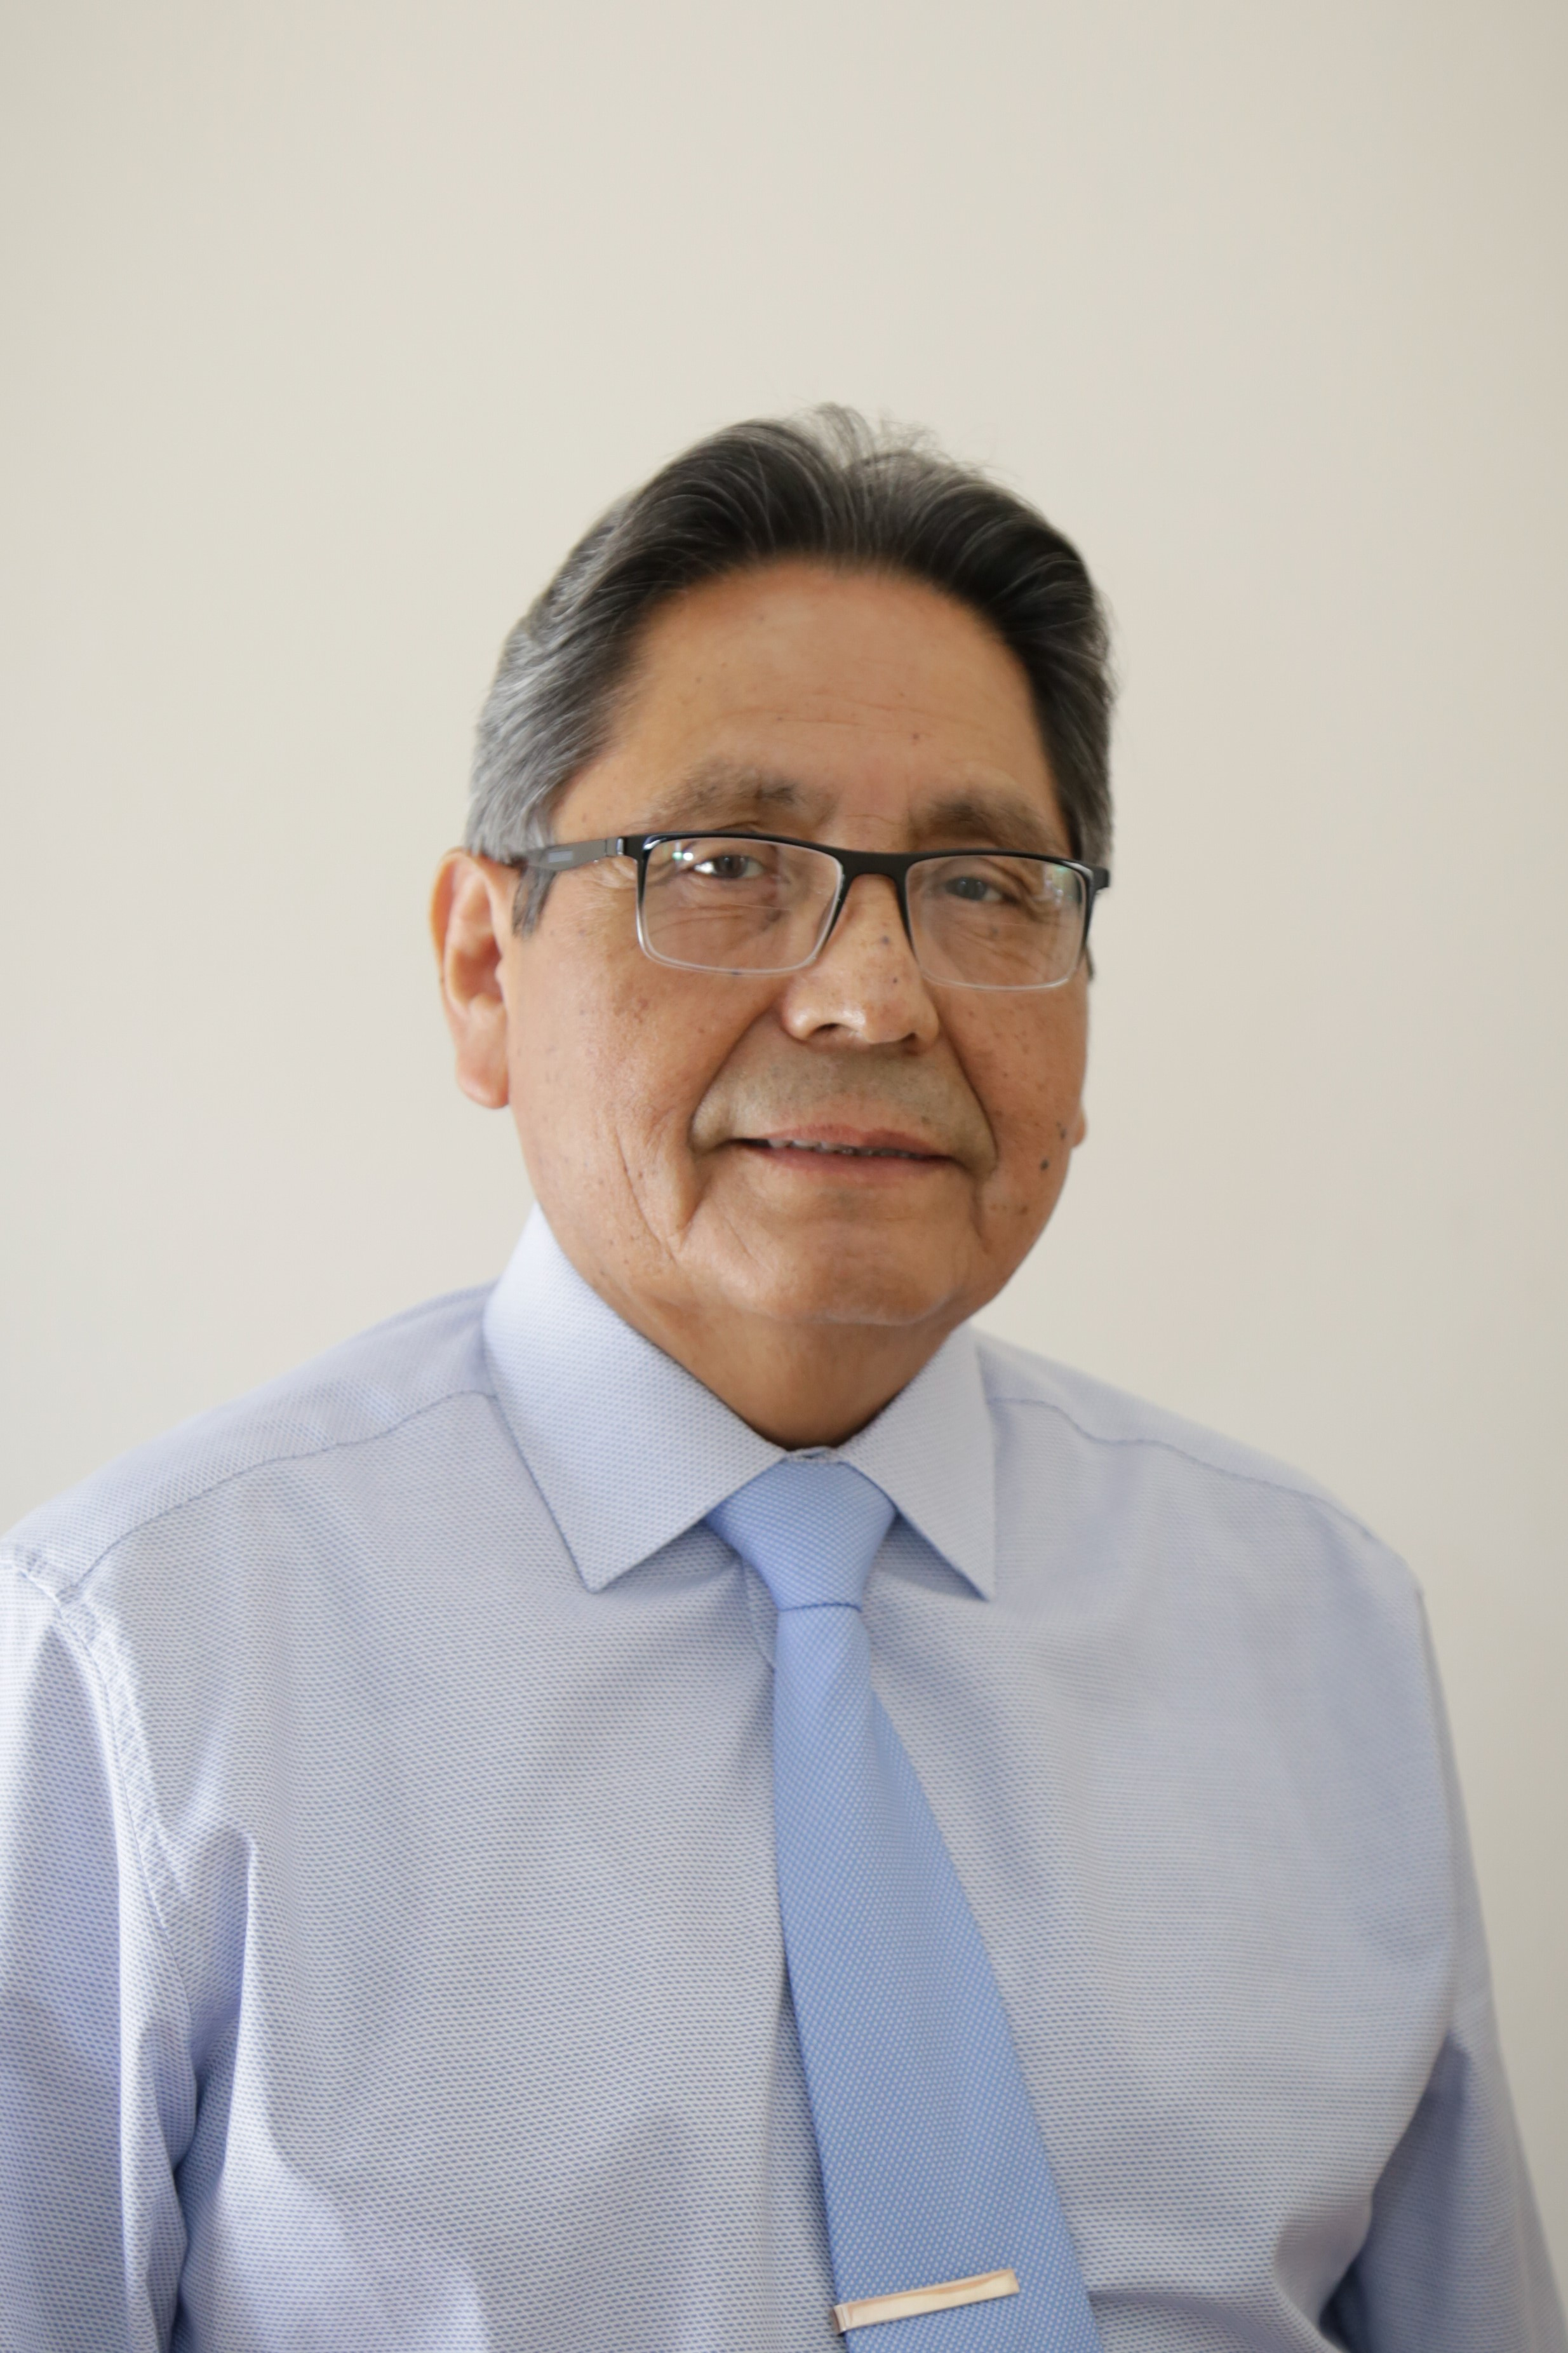 Photo of Jorge Odon Alarcon Villaverde